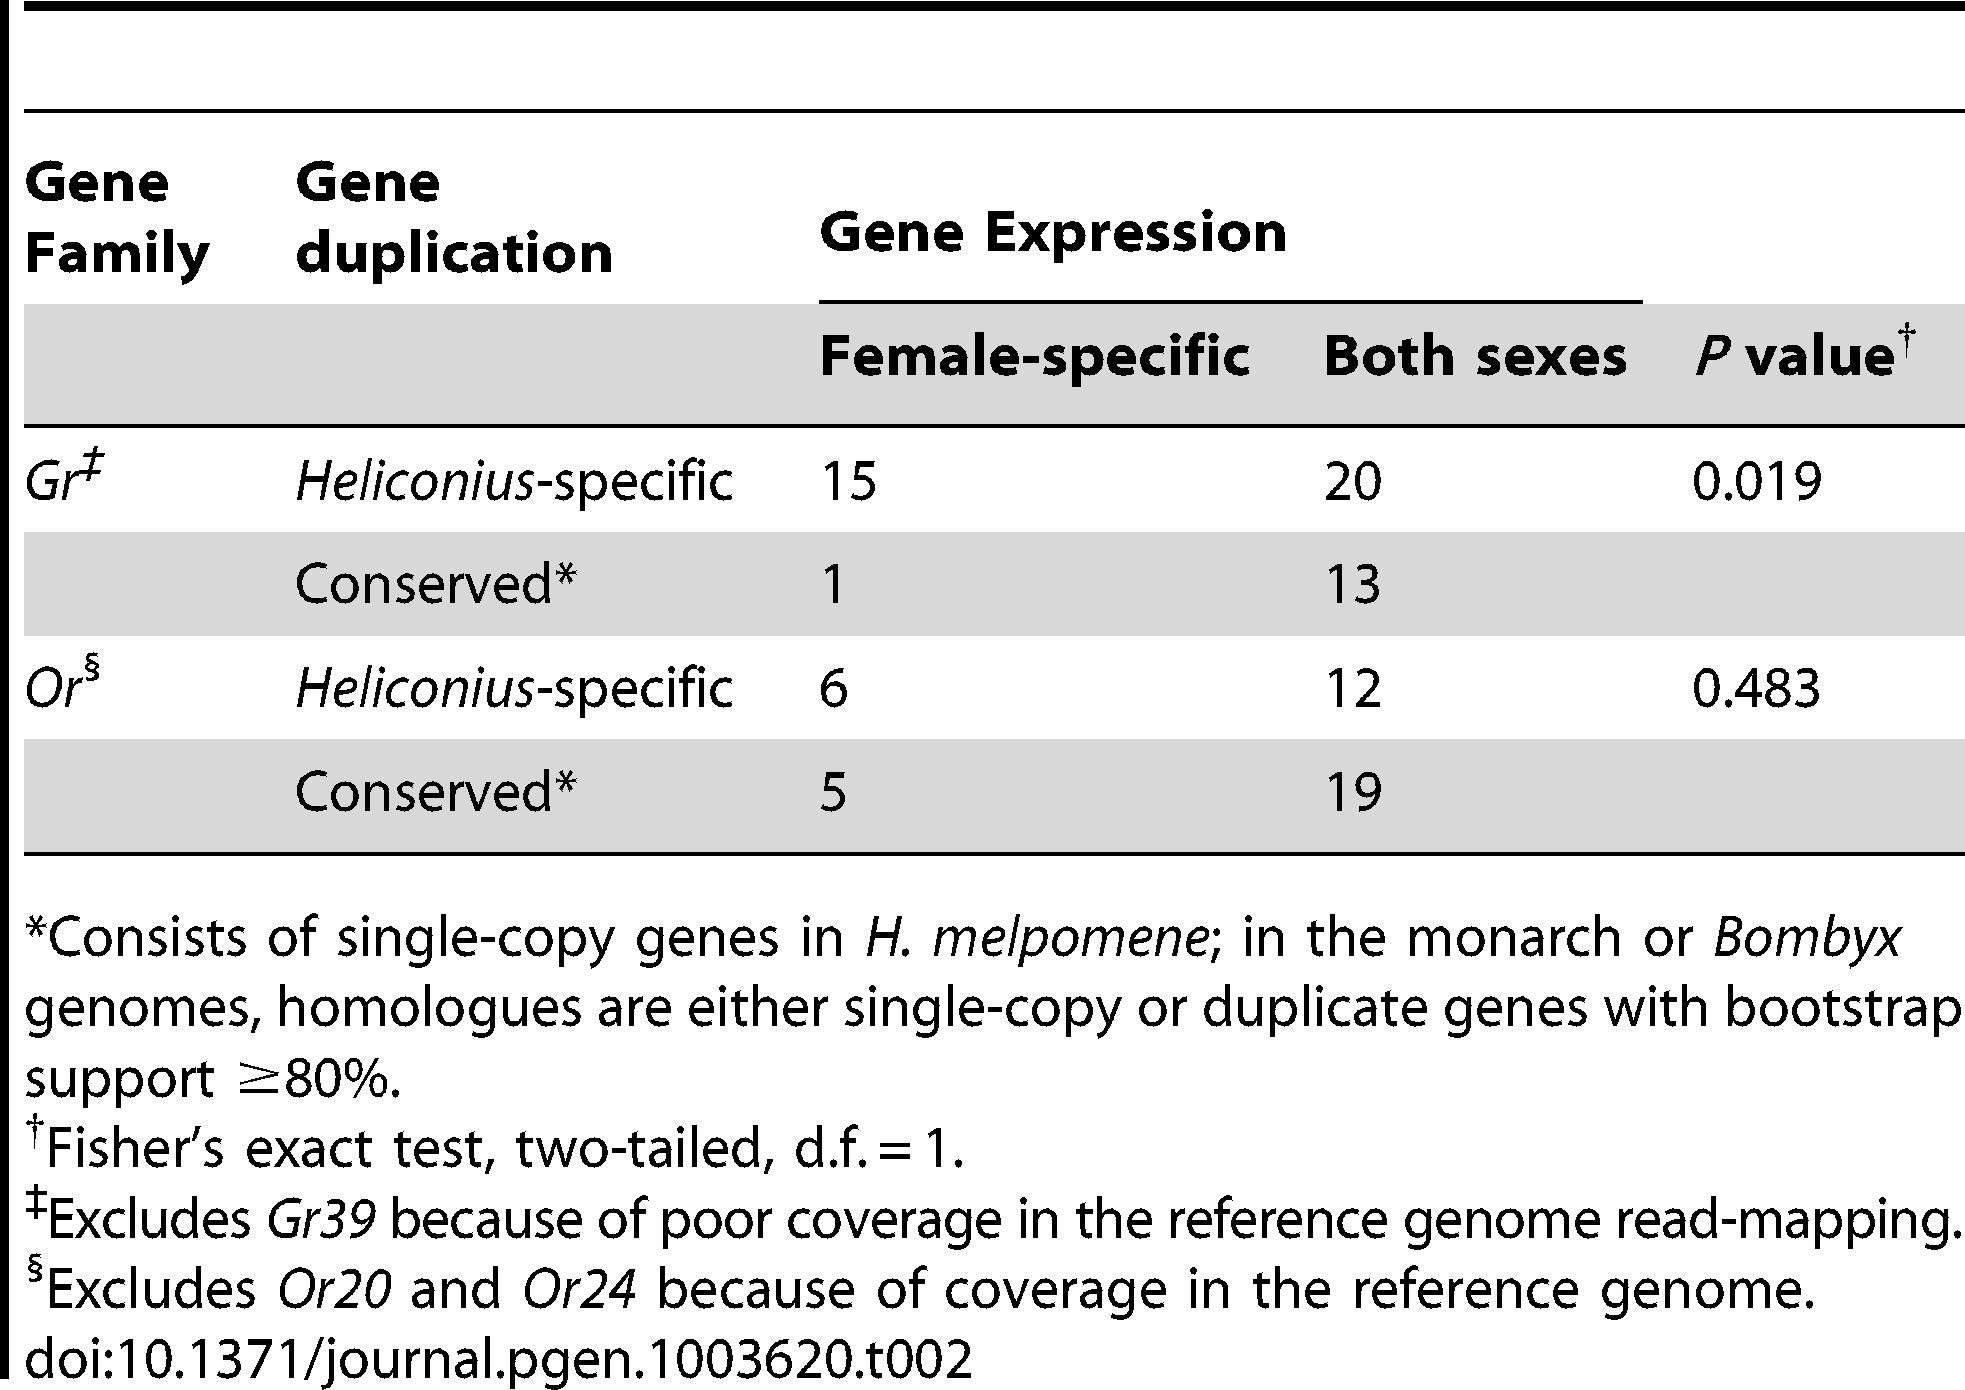 An overabundance of <i>Grs</i> expressed in female legs are the result of <i>Heliconius</i>-specific duplication.